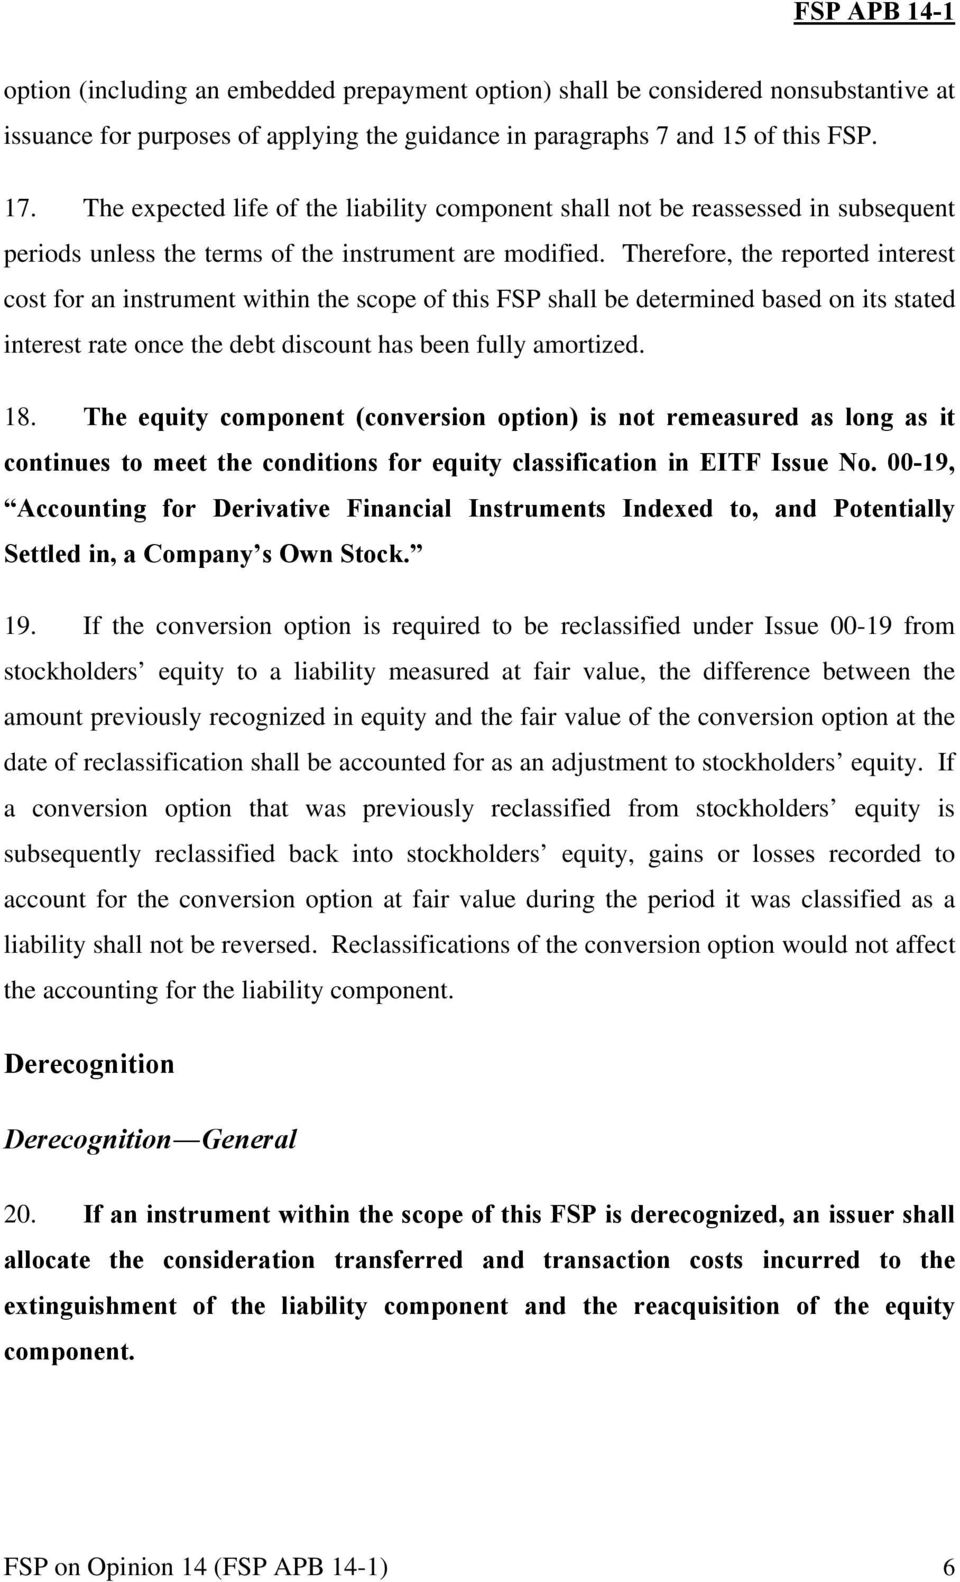 Therefore, the reported interest cost for an instrument within the scope of this FSP shall be determined based on its stated interest rate once the debt discount has been fully amortized. 18.